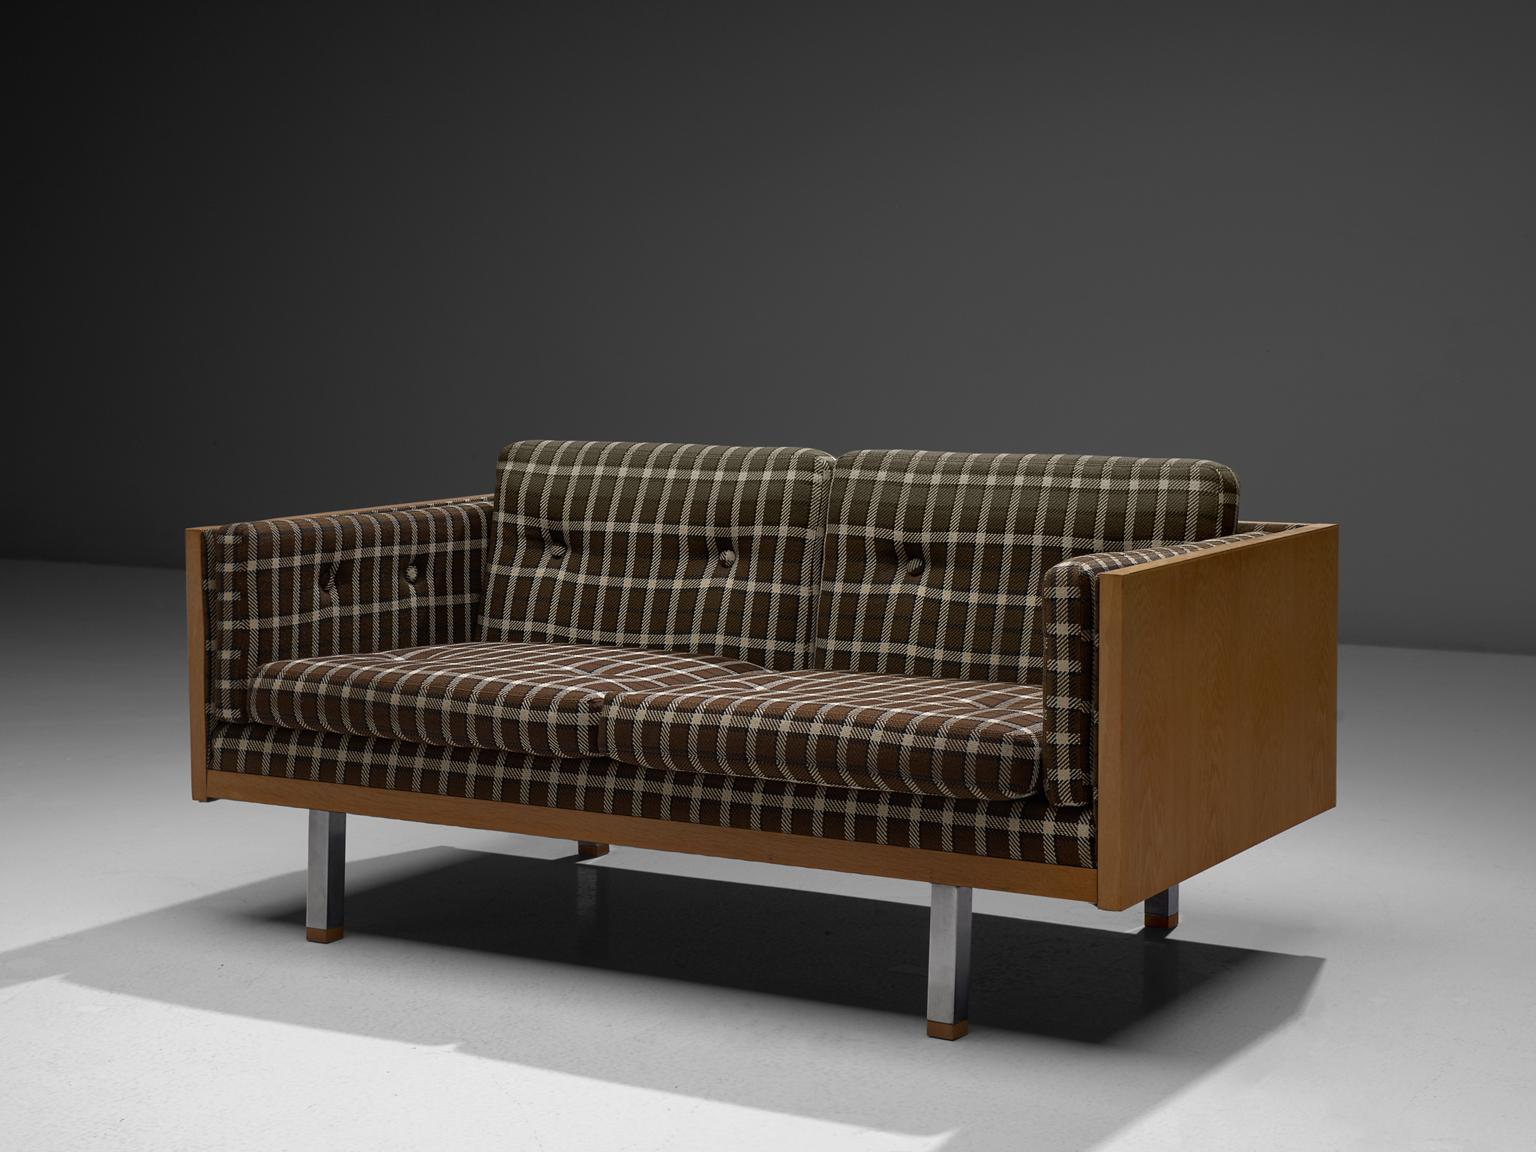 Scandinavian Two Seat Sofa In Oak And Checkered Upholstery